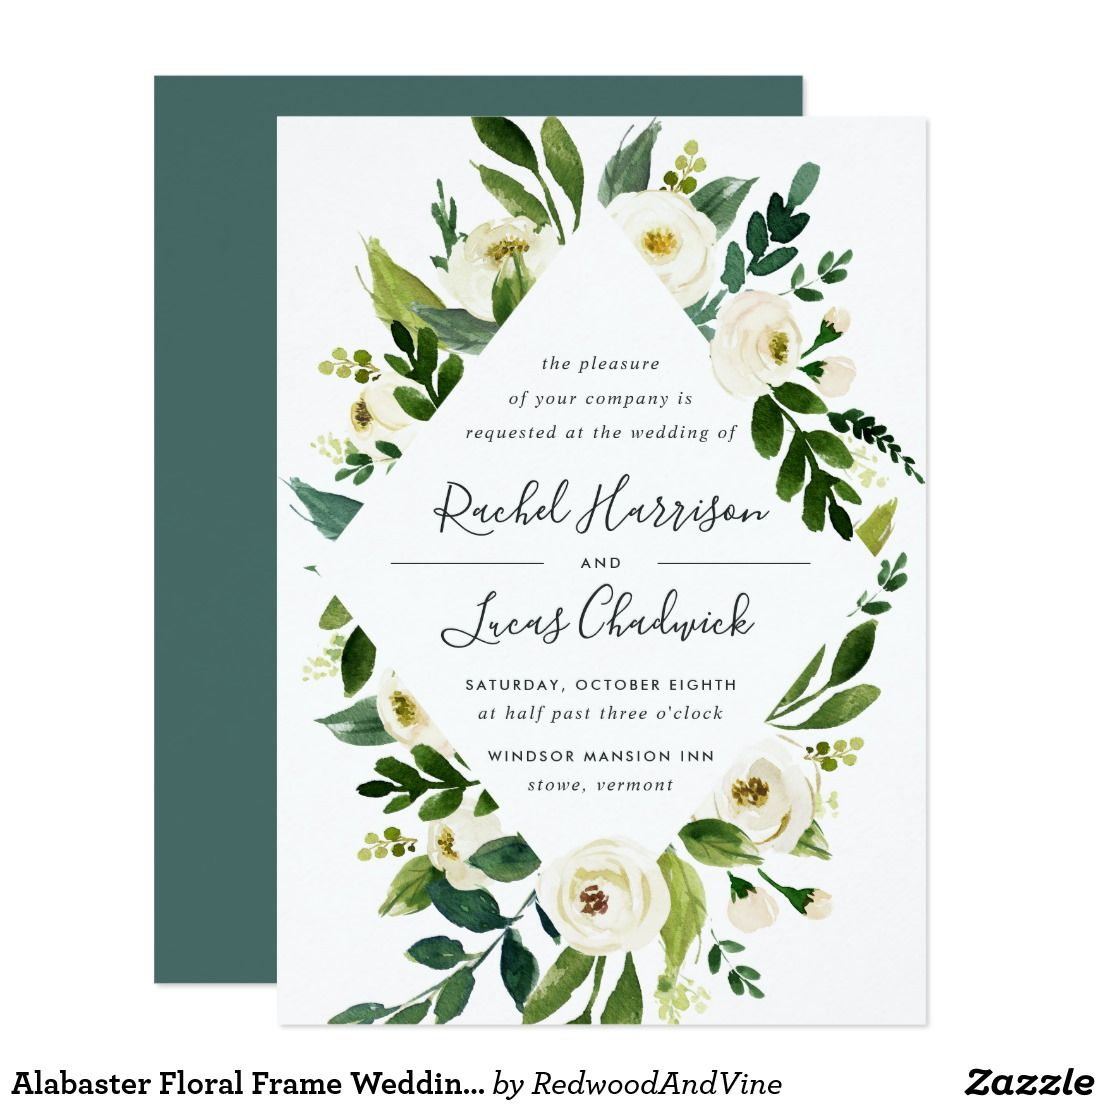 Alabaster Floral Frame Wedding Invitation White Peonies Greenery